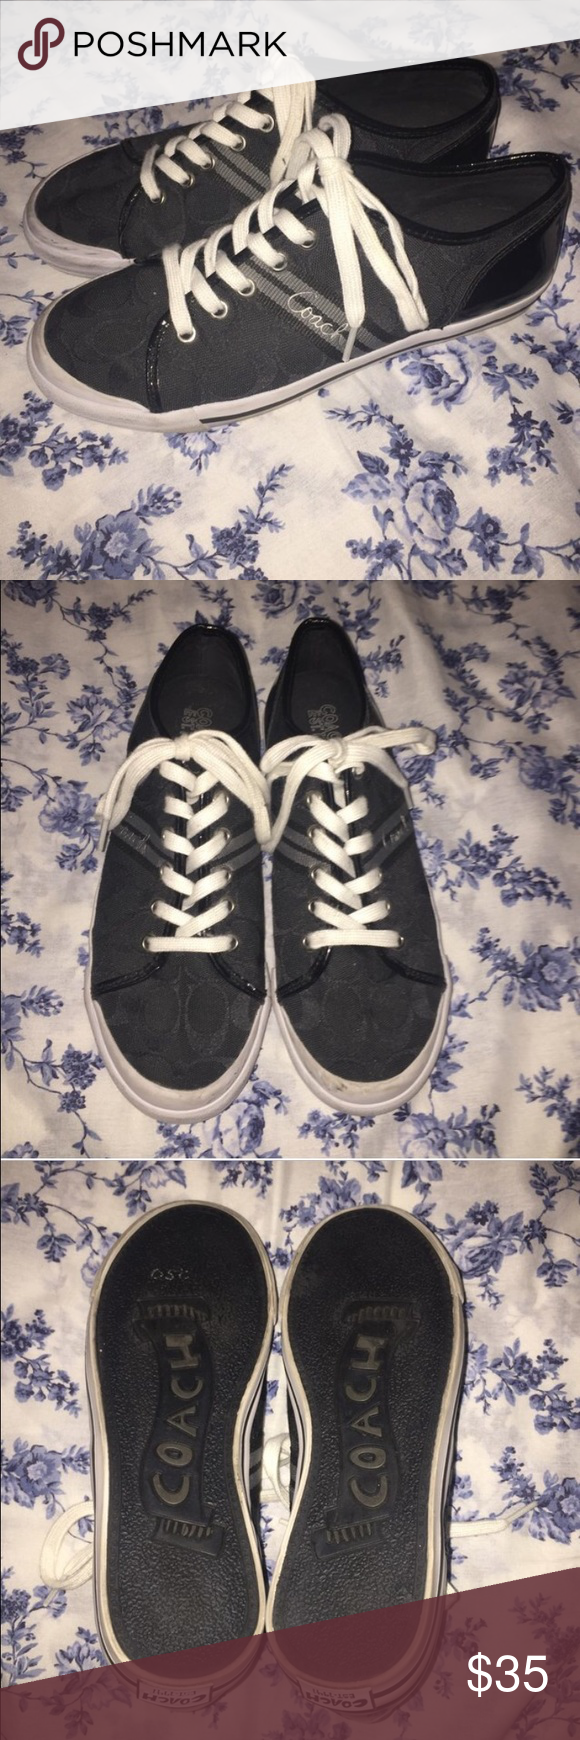 Black Coach Sneakers Great Condition & Hardly Worn. Small Scuff On Heel But Not Very Noticeable. Does Not Have A Tag With The Size But Would Fit A Women's 8.5 Best. Coach Shoes Sneakers